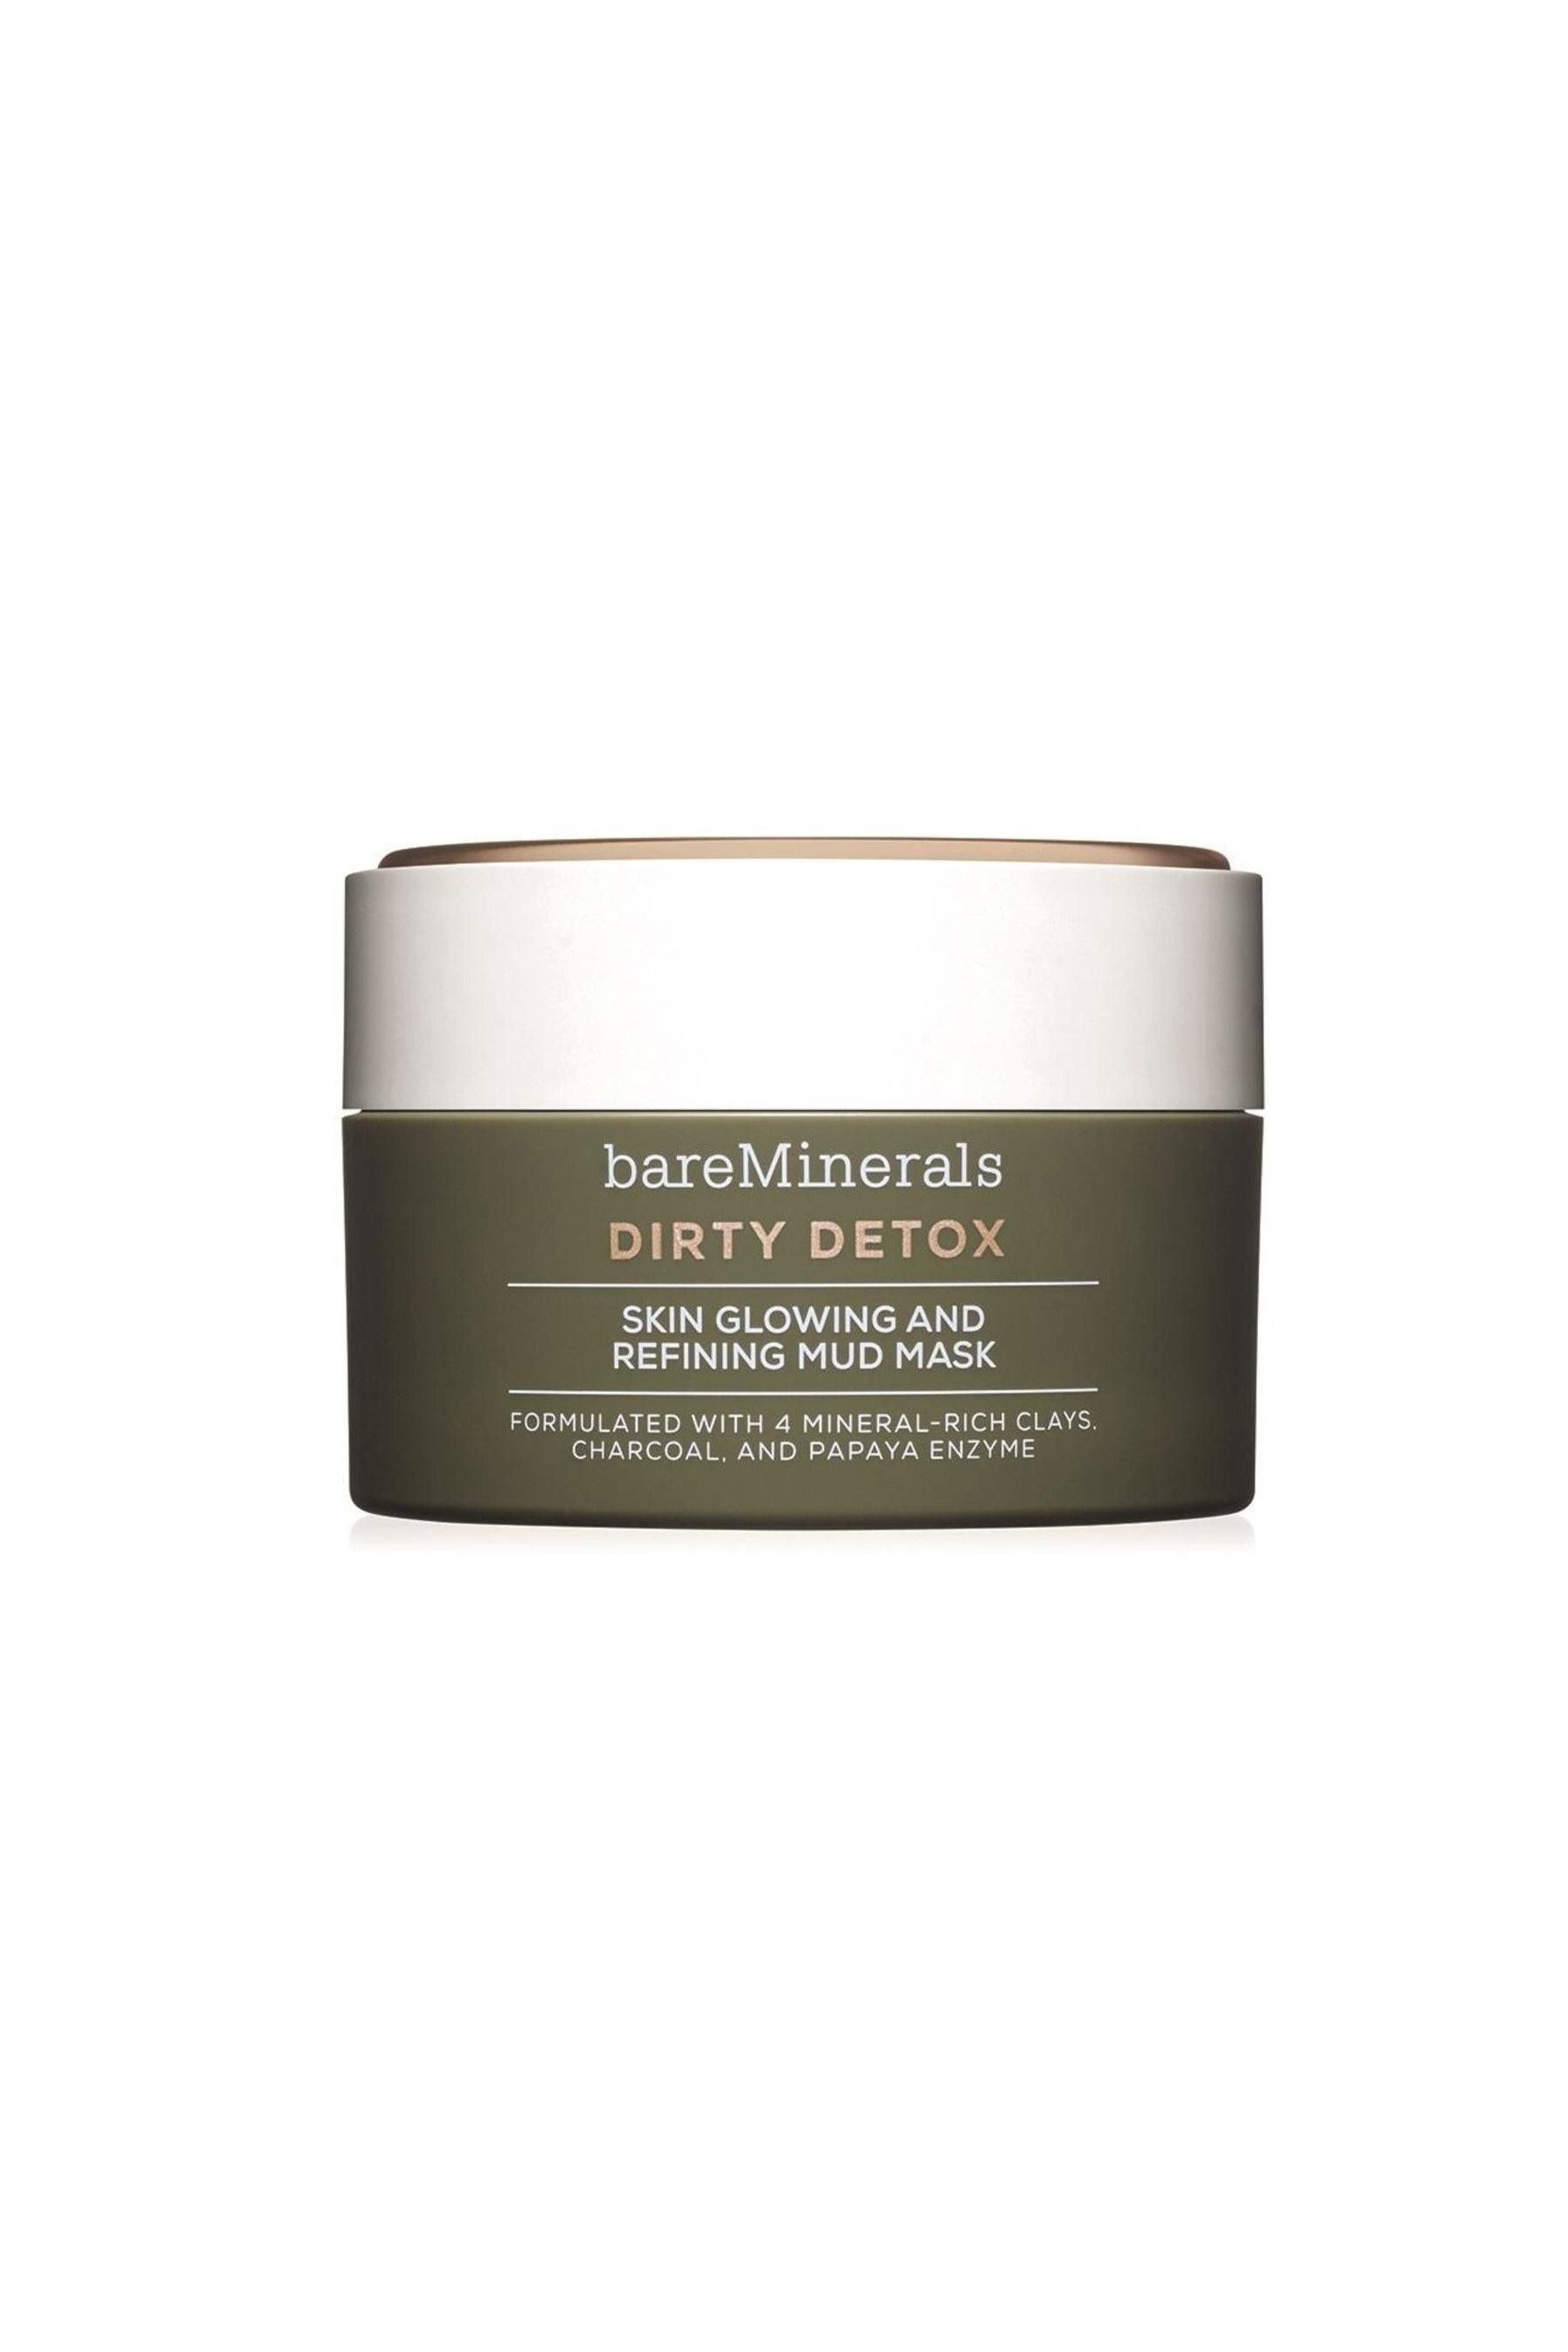 Dirty Detox Skin Glowing & Refining Mud Mask by bareMinerals #22